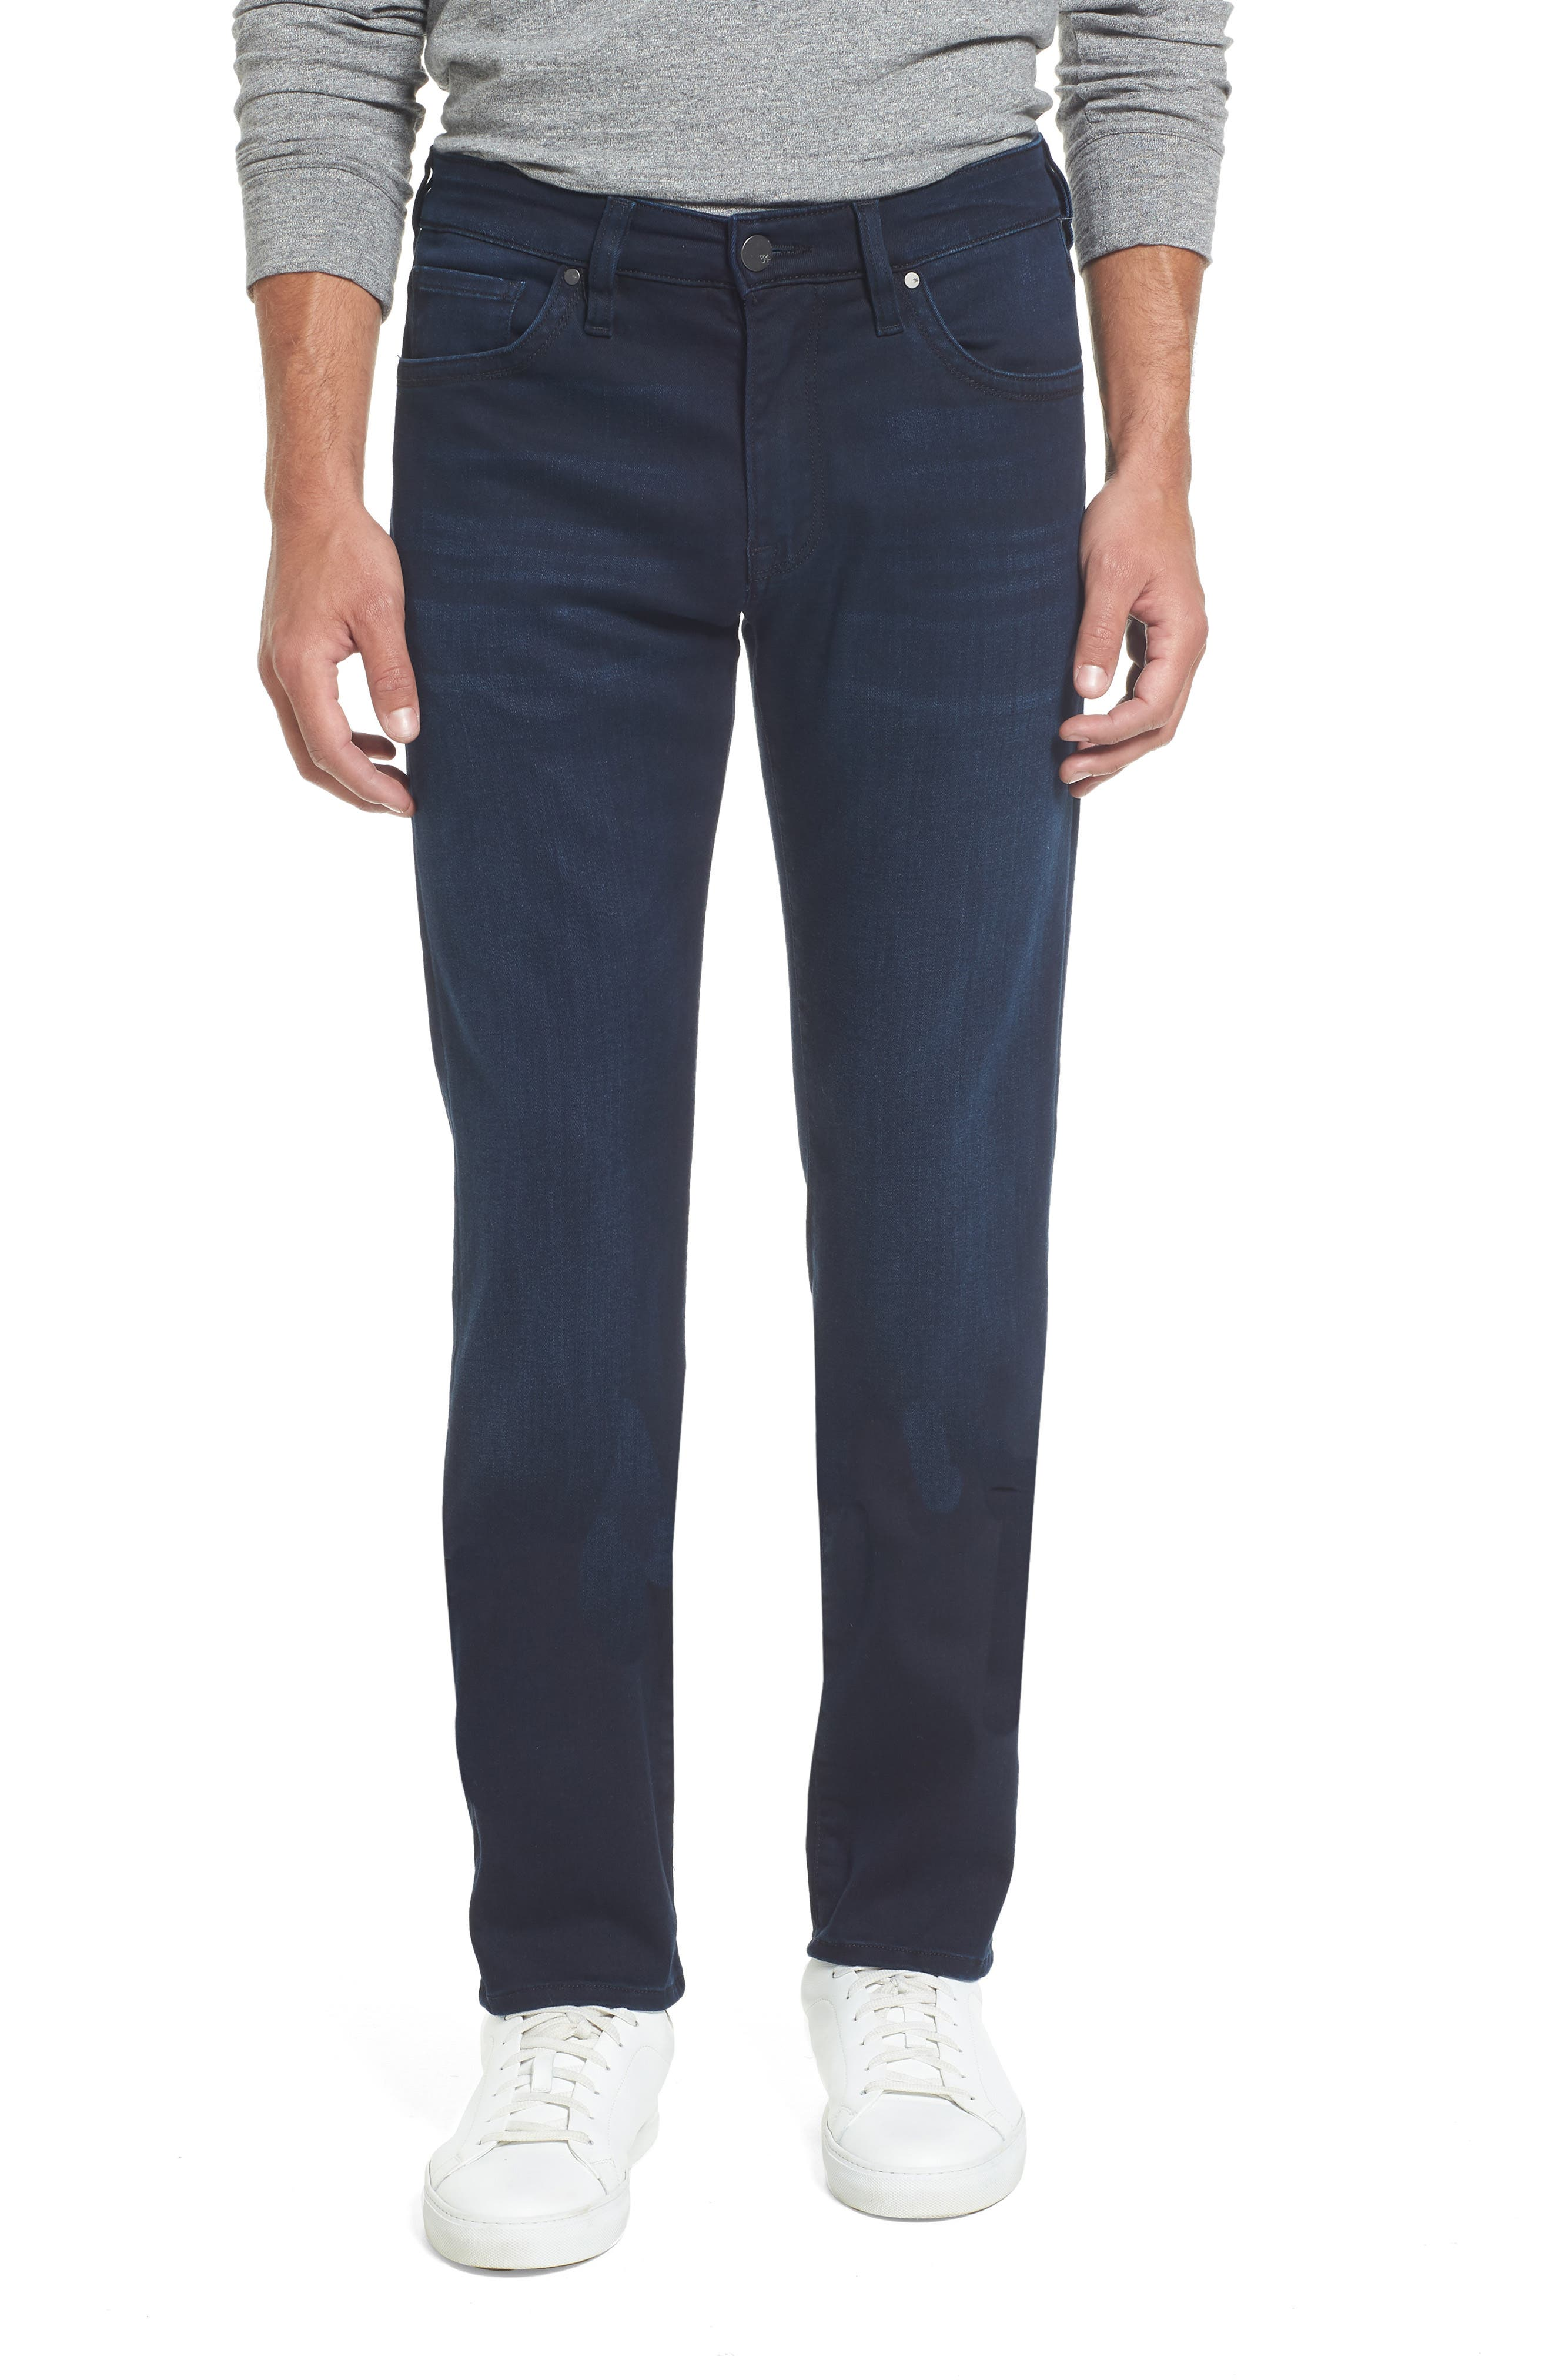 Courage Straight Fit Jeans,                             Main thumbnail 1, color,                             Ink Rome